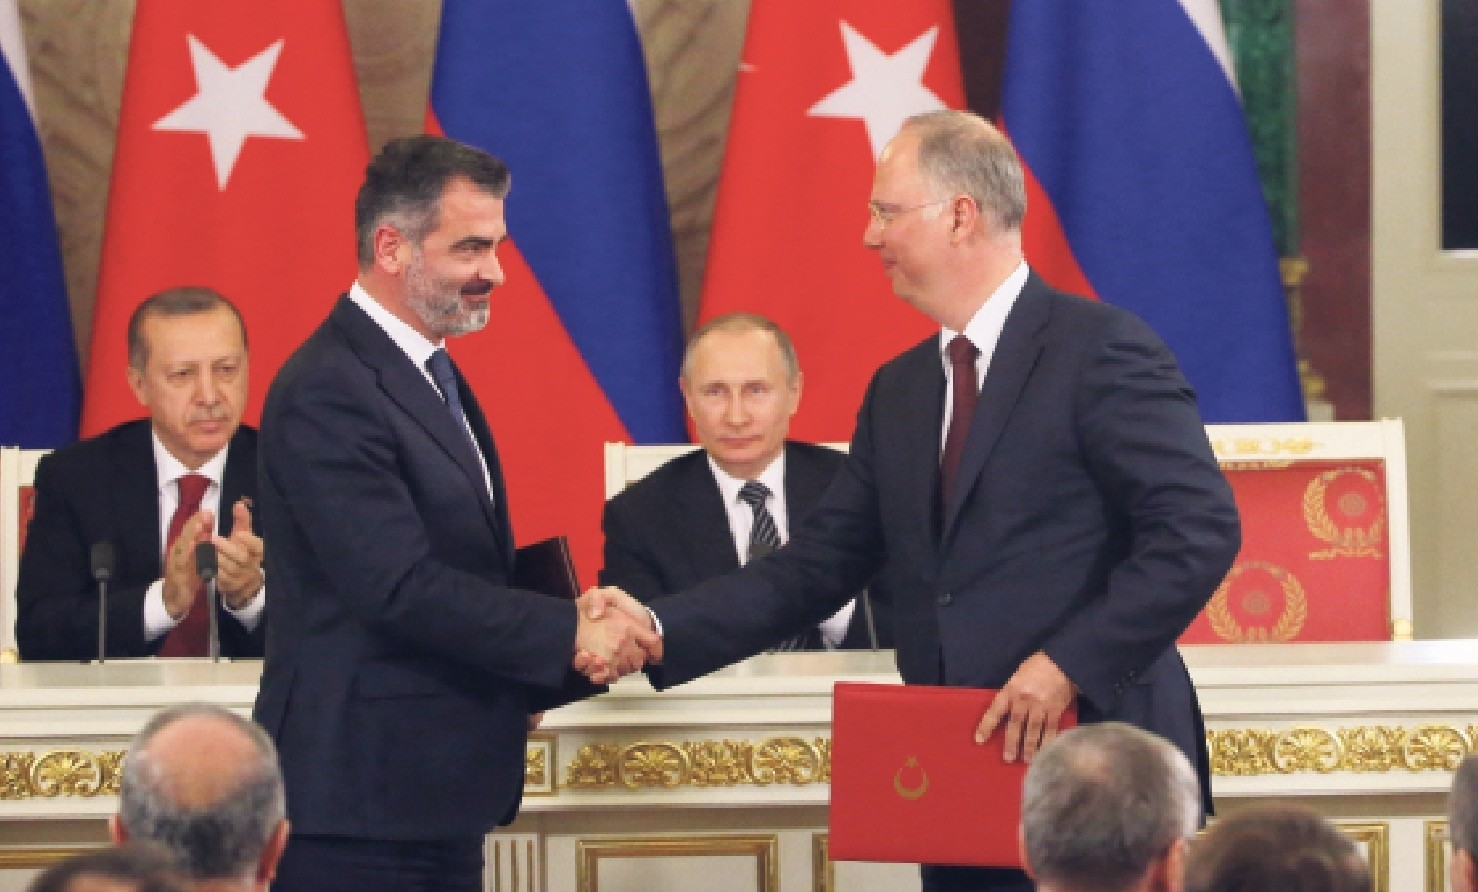 Last Friday, Turkey and Russia signed agreement on the establishment of a joint investment fund. Turkeyu2019s Sovereign Wealth Fund Chairman Bostan also announced that other agreements are on the agenda as the fund attracts international interest.